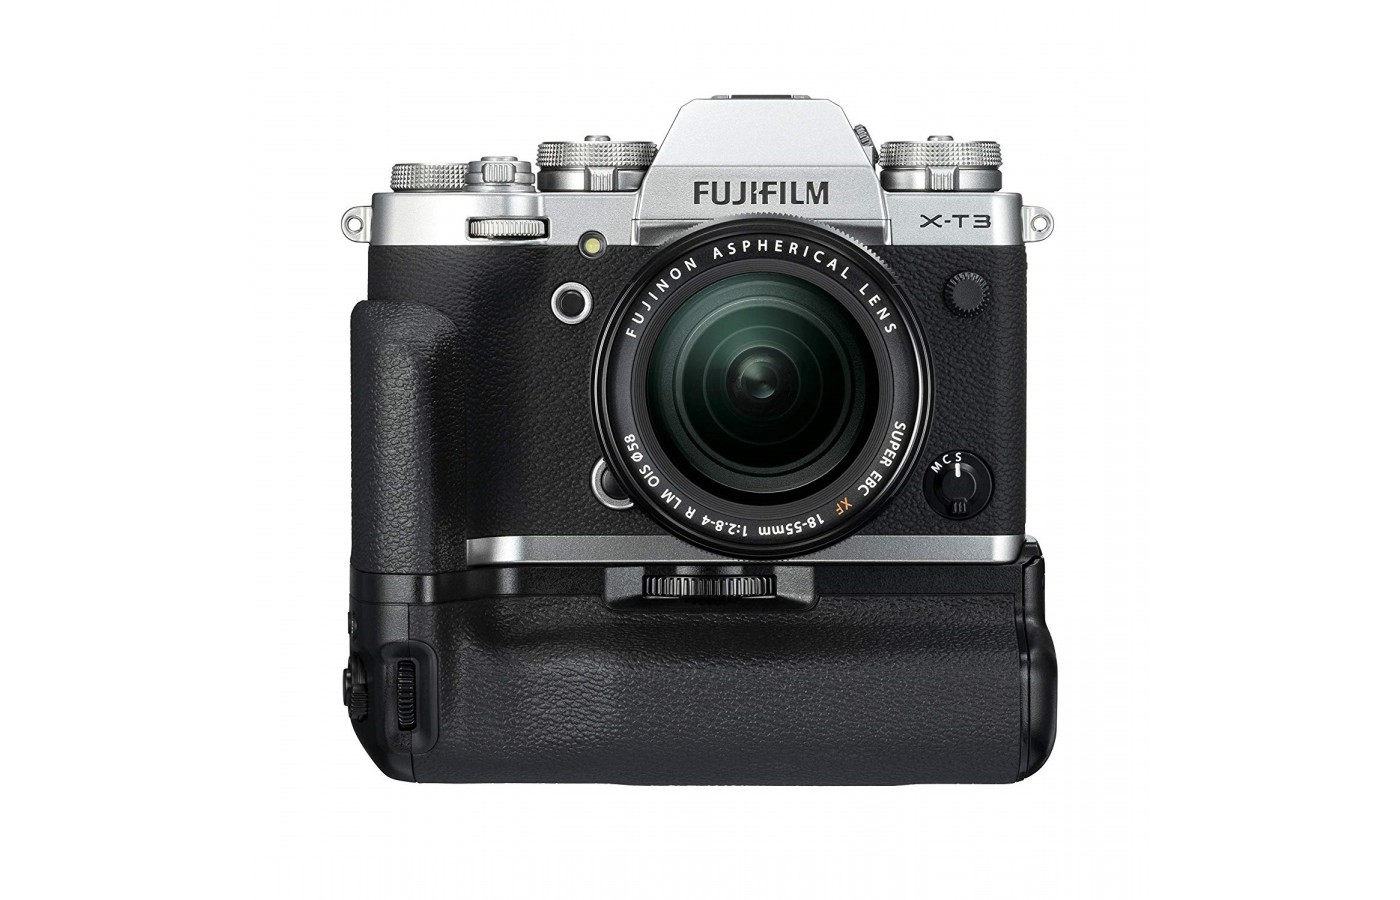 The Fujifilm X-T3 offers a  a 3.69-million-dot high resolution EVF for a clearer image and resolution.